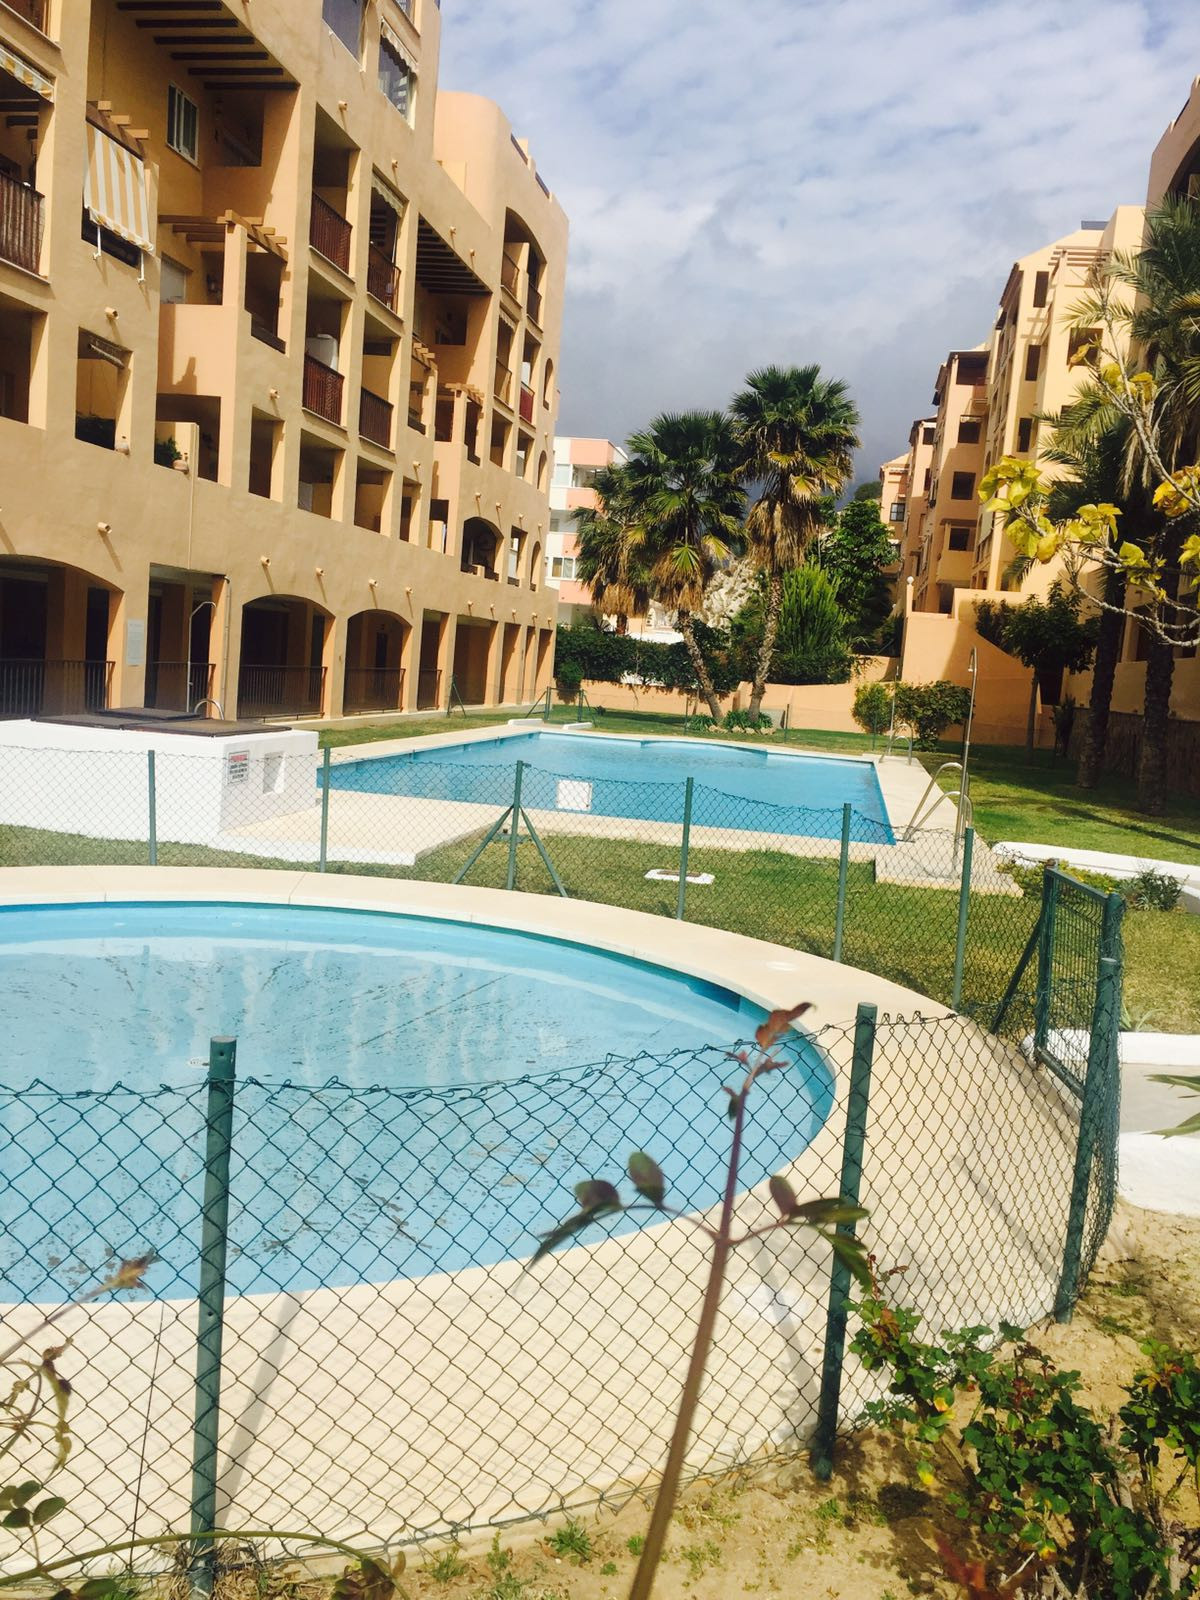 Beautiful apartment for sale in Los Pacos-Fuengirola. The urbanization is from the year 2006. Unbeat,Spain